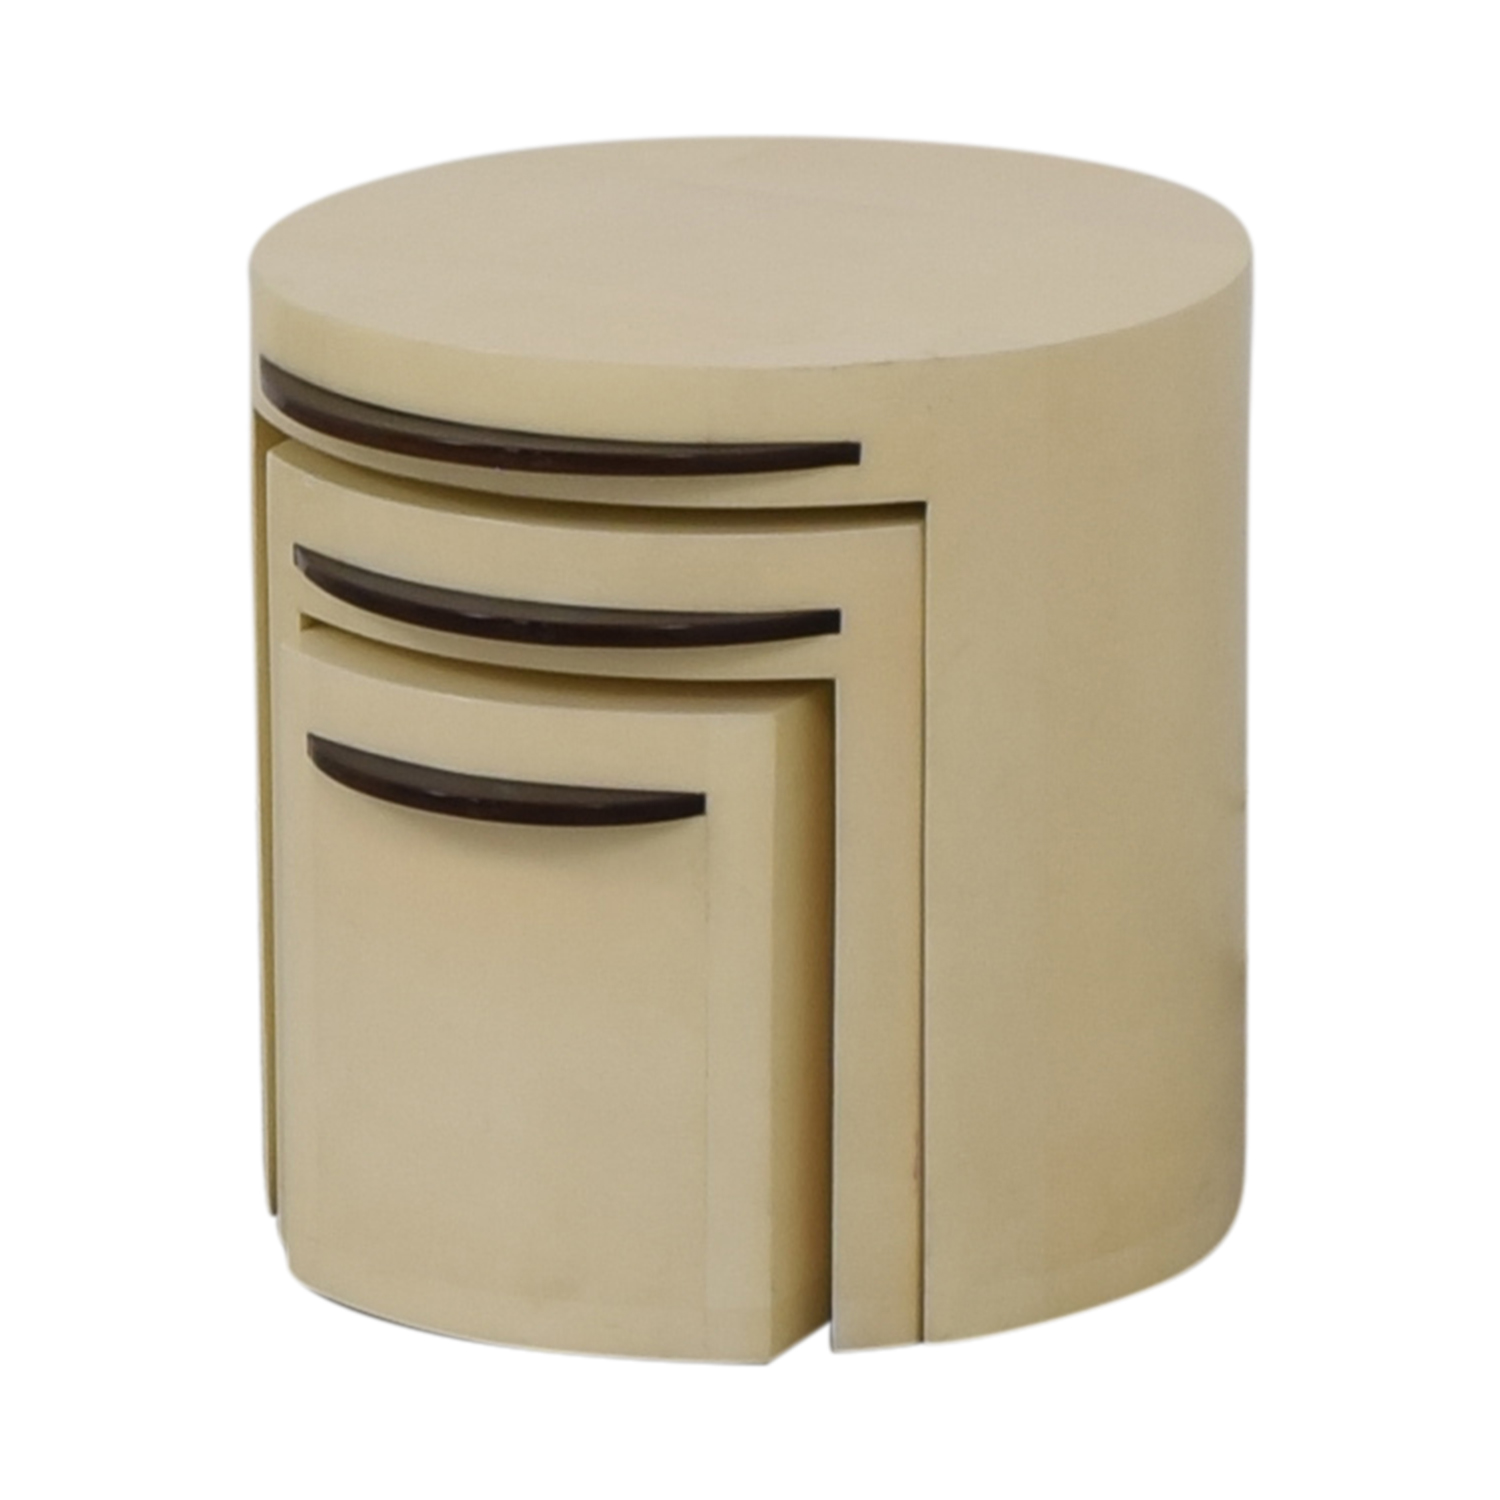 Lorin Marsh Lacquered Nesting Tables Lorin Marsh